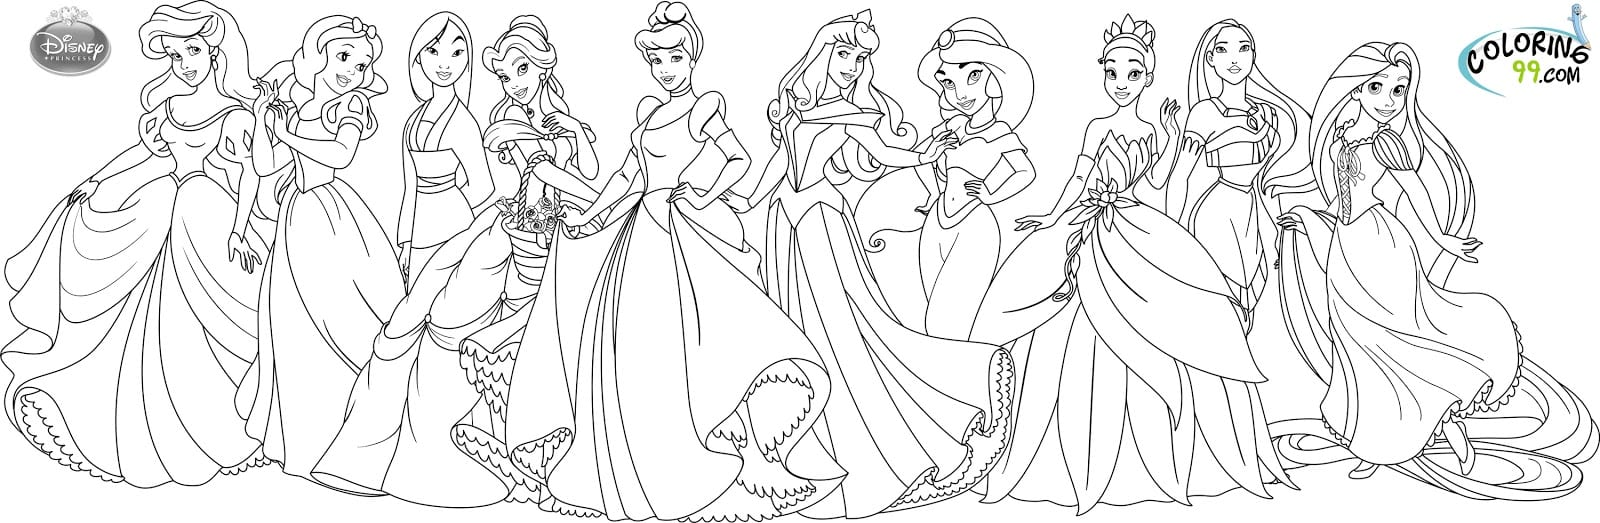 28+ Collection Of All Disney Princess Coloring Pages